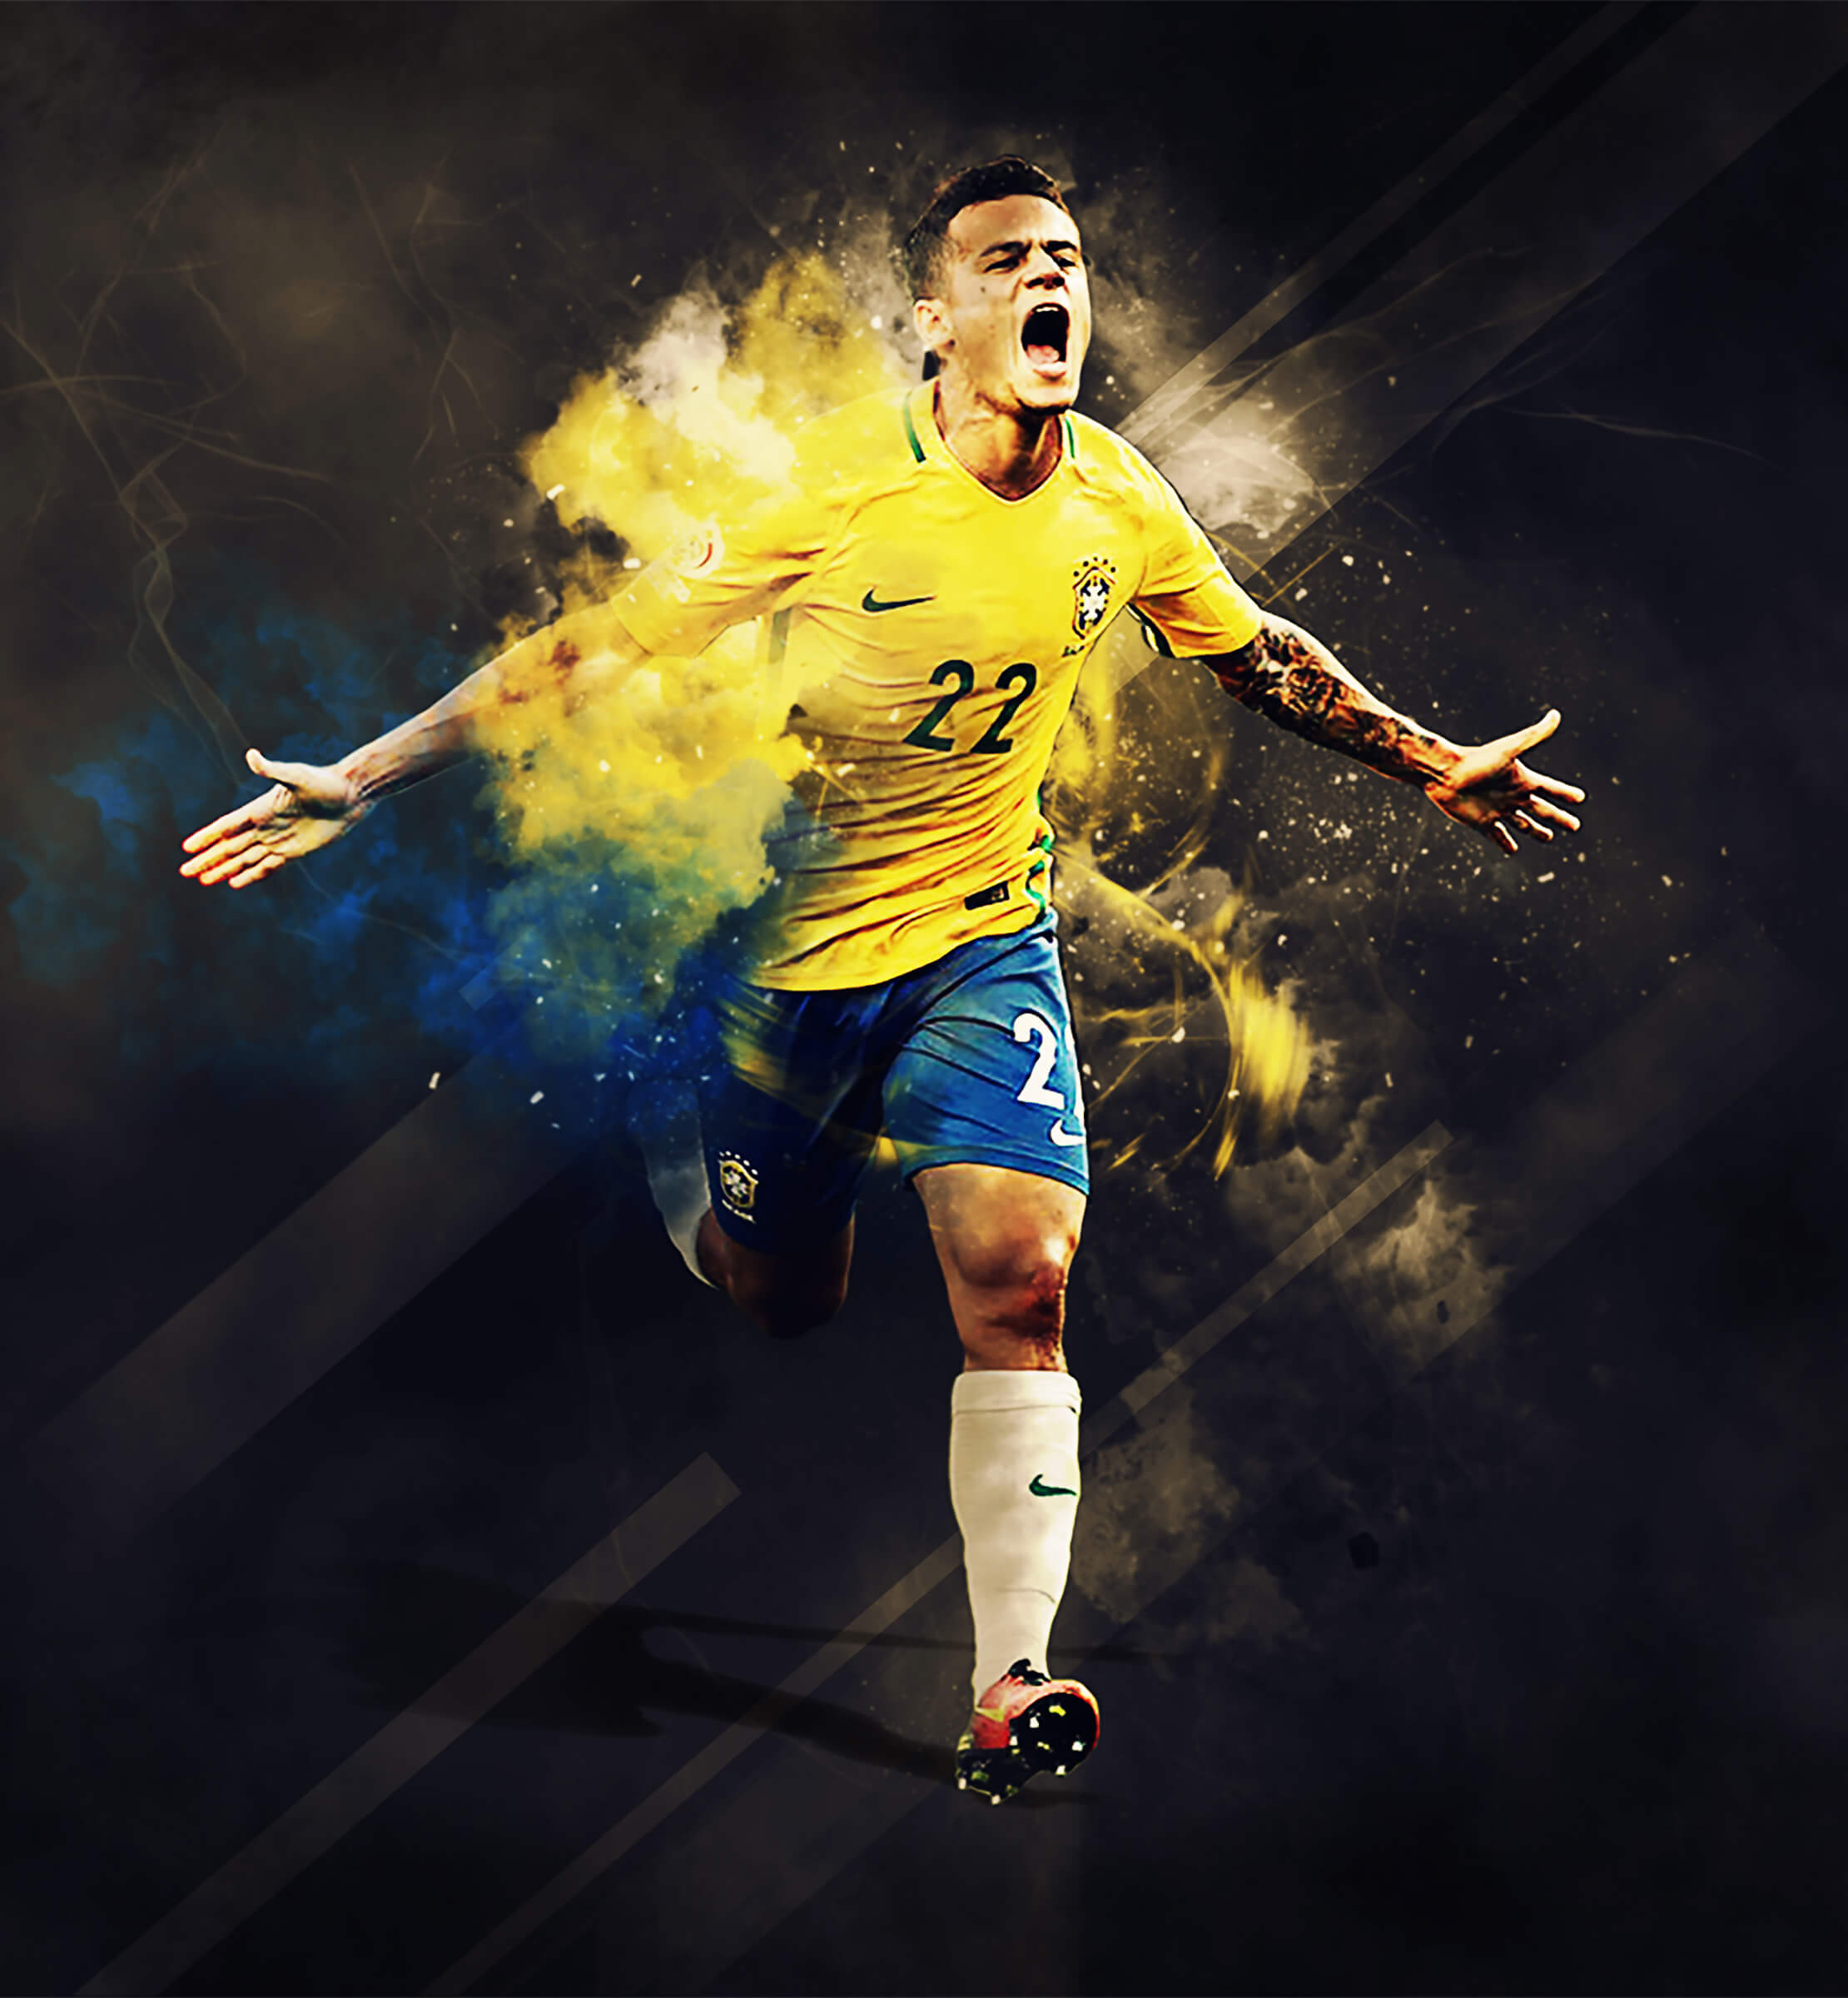 Brazilian professional footballer Philippe Coutinho wearing a yellow football shirt with number 22 on it and blue shorts